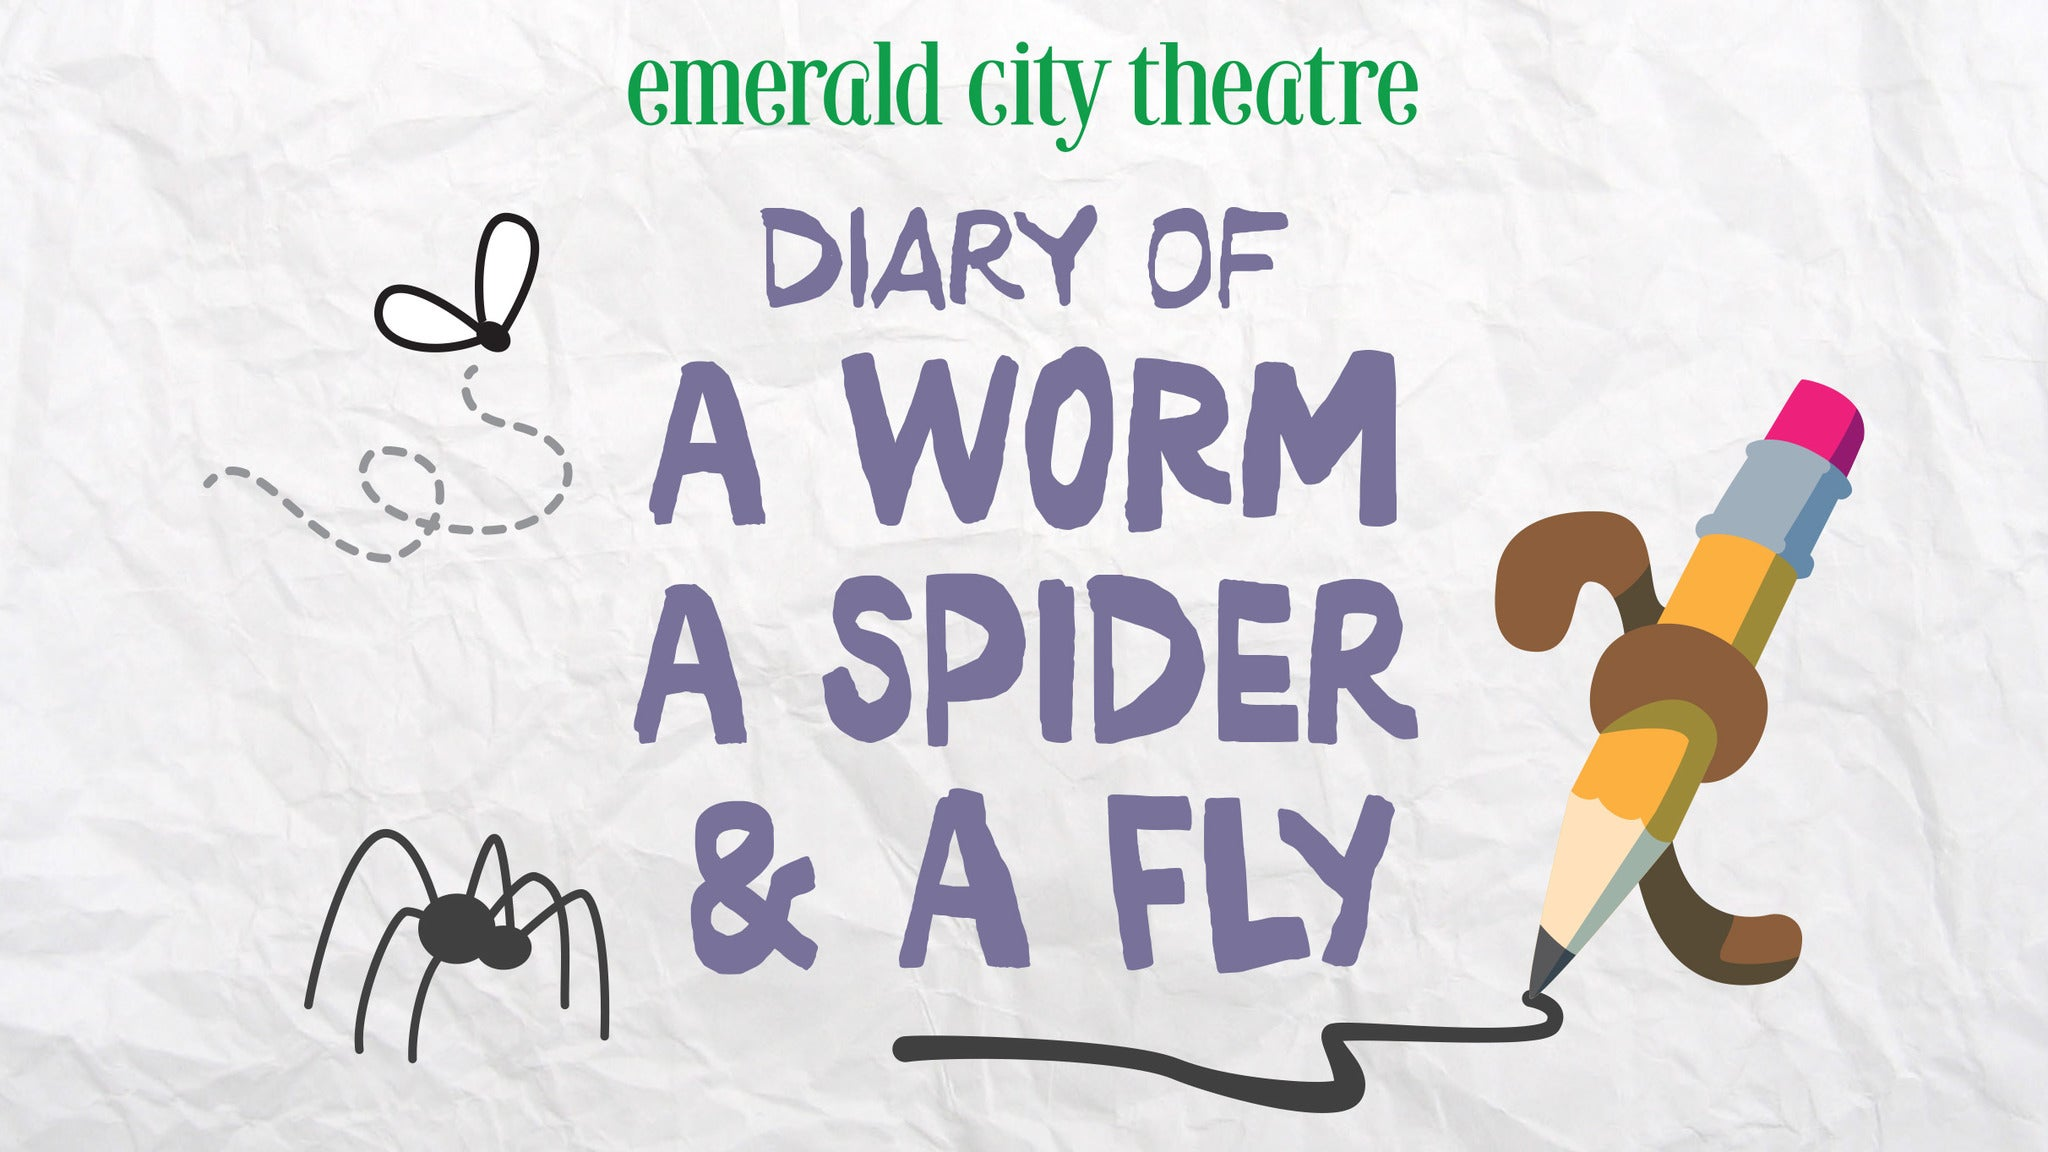 Emerald City Theatre: Diary of a Worm, a Spider & a Fly - Chicago, IL 60614